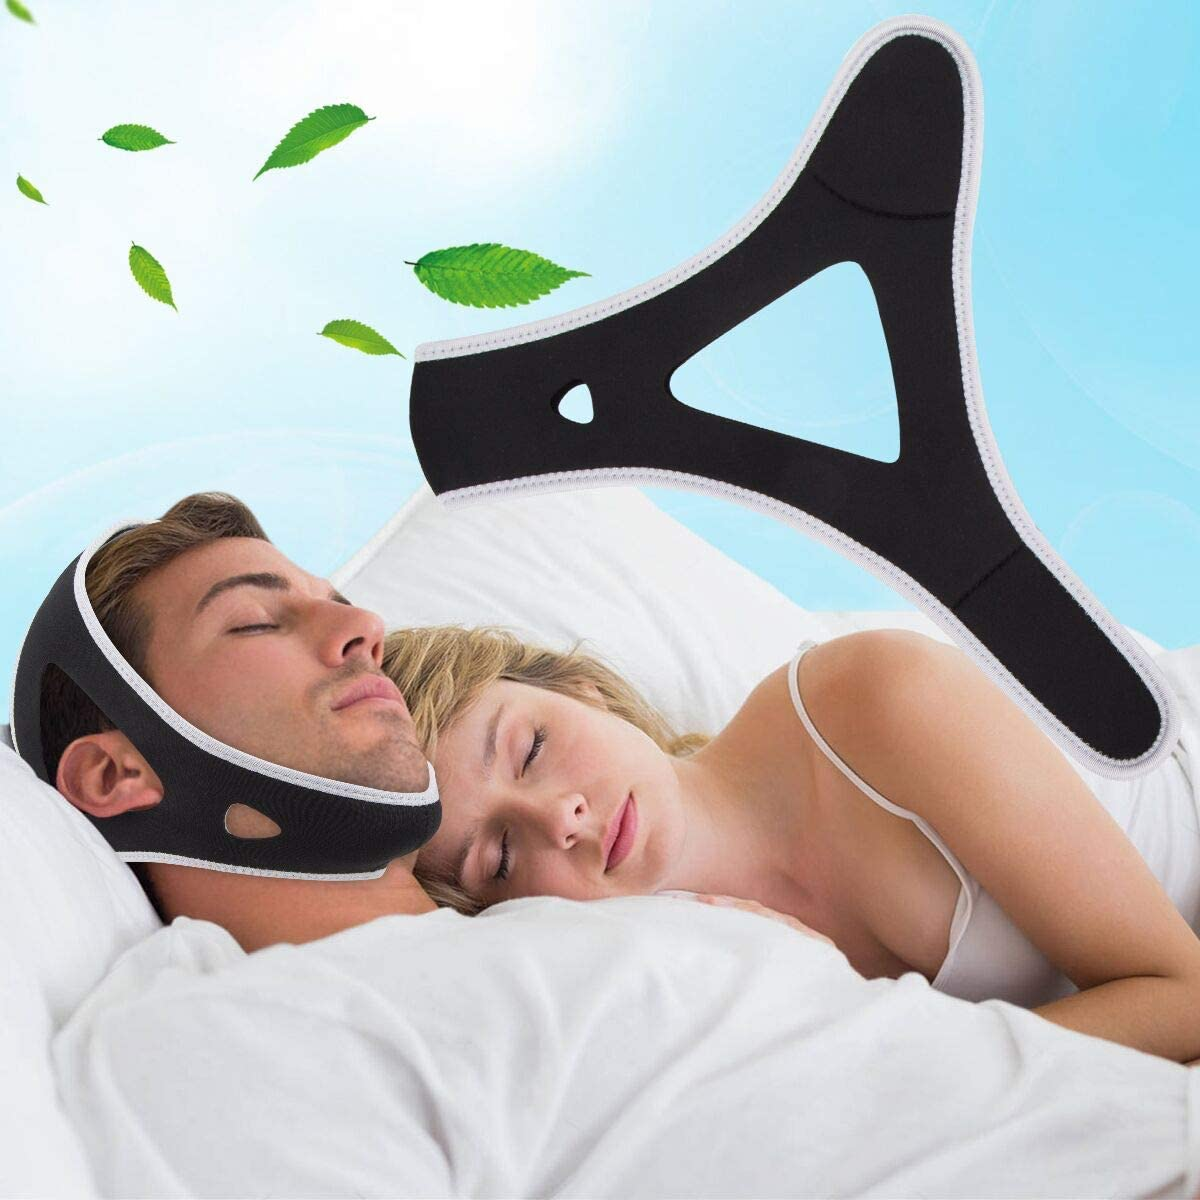 Anti Snoring Chin Straps,Ajustable Stop Snoring Solution Snore Reduction Sleep Aids,Anti Snoring Devices Snore Stopper Chin Straps for Men Women Snoring